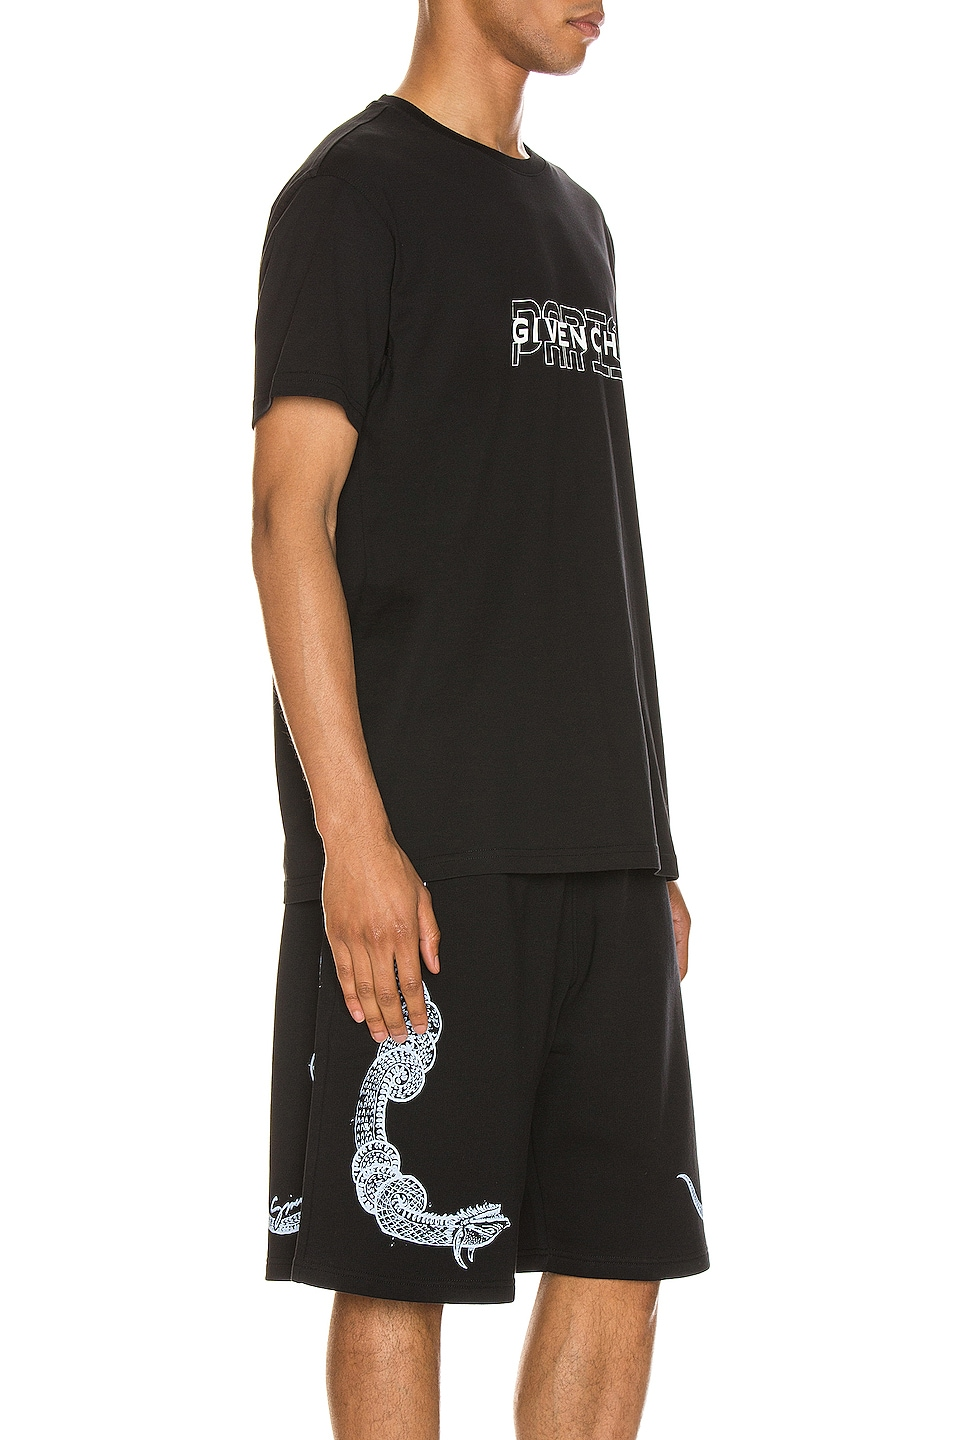 Image 2 of Givenchy Short Sleeve Tee in Black